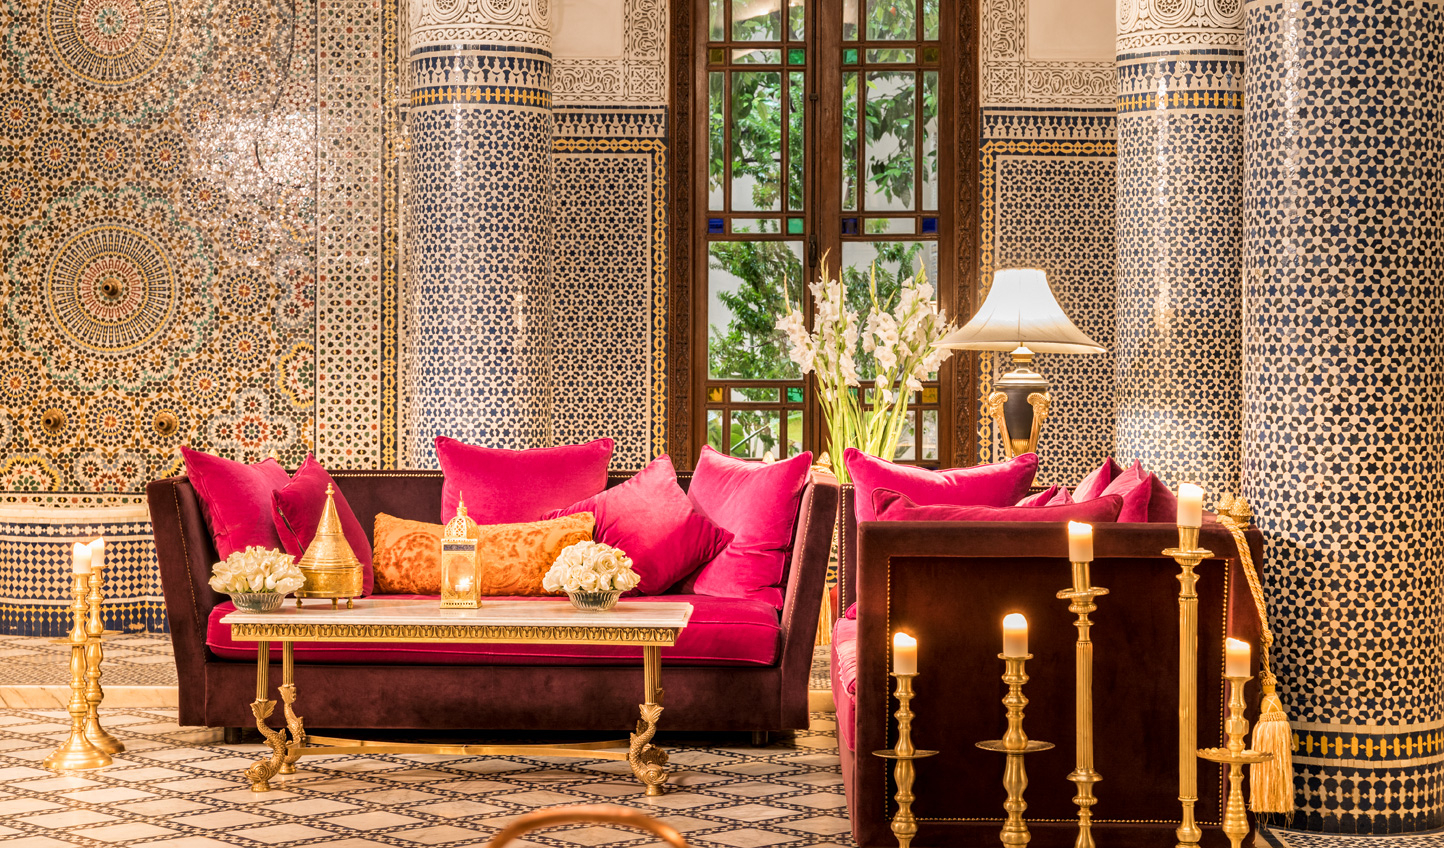 Bright and bold design adds a twist to Moroccan design